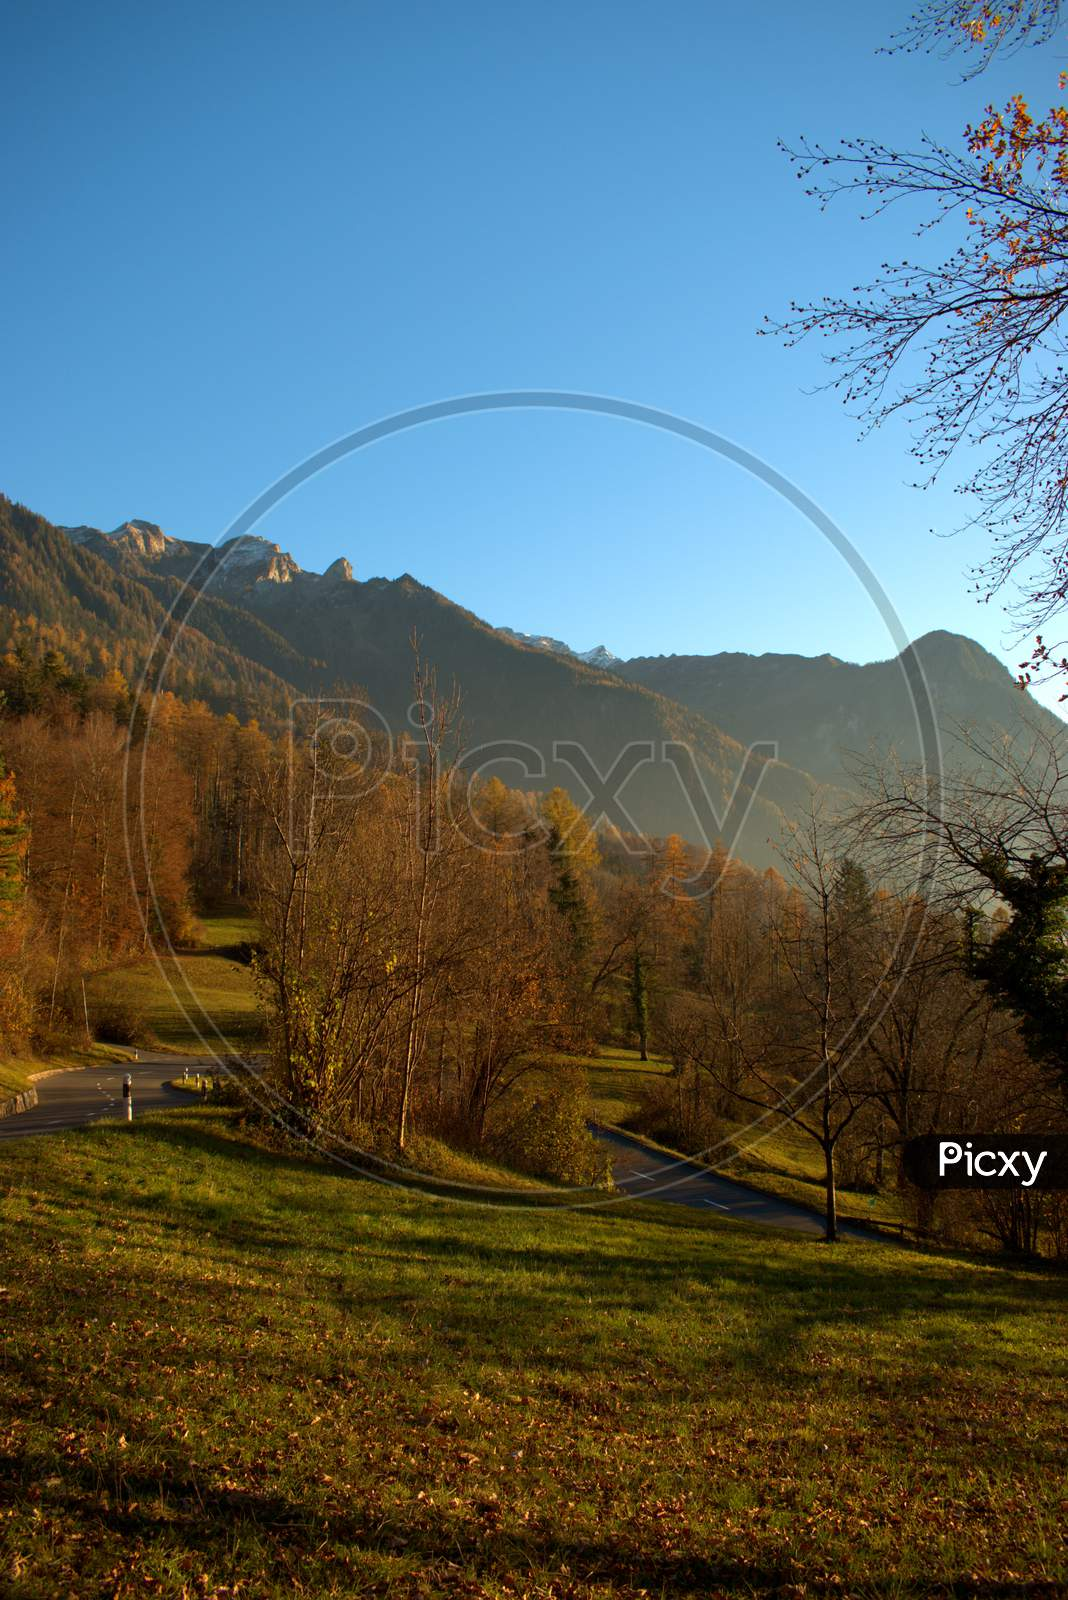 Autumn mood in Triesenberg in Liechtenstein 18.11.2020